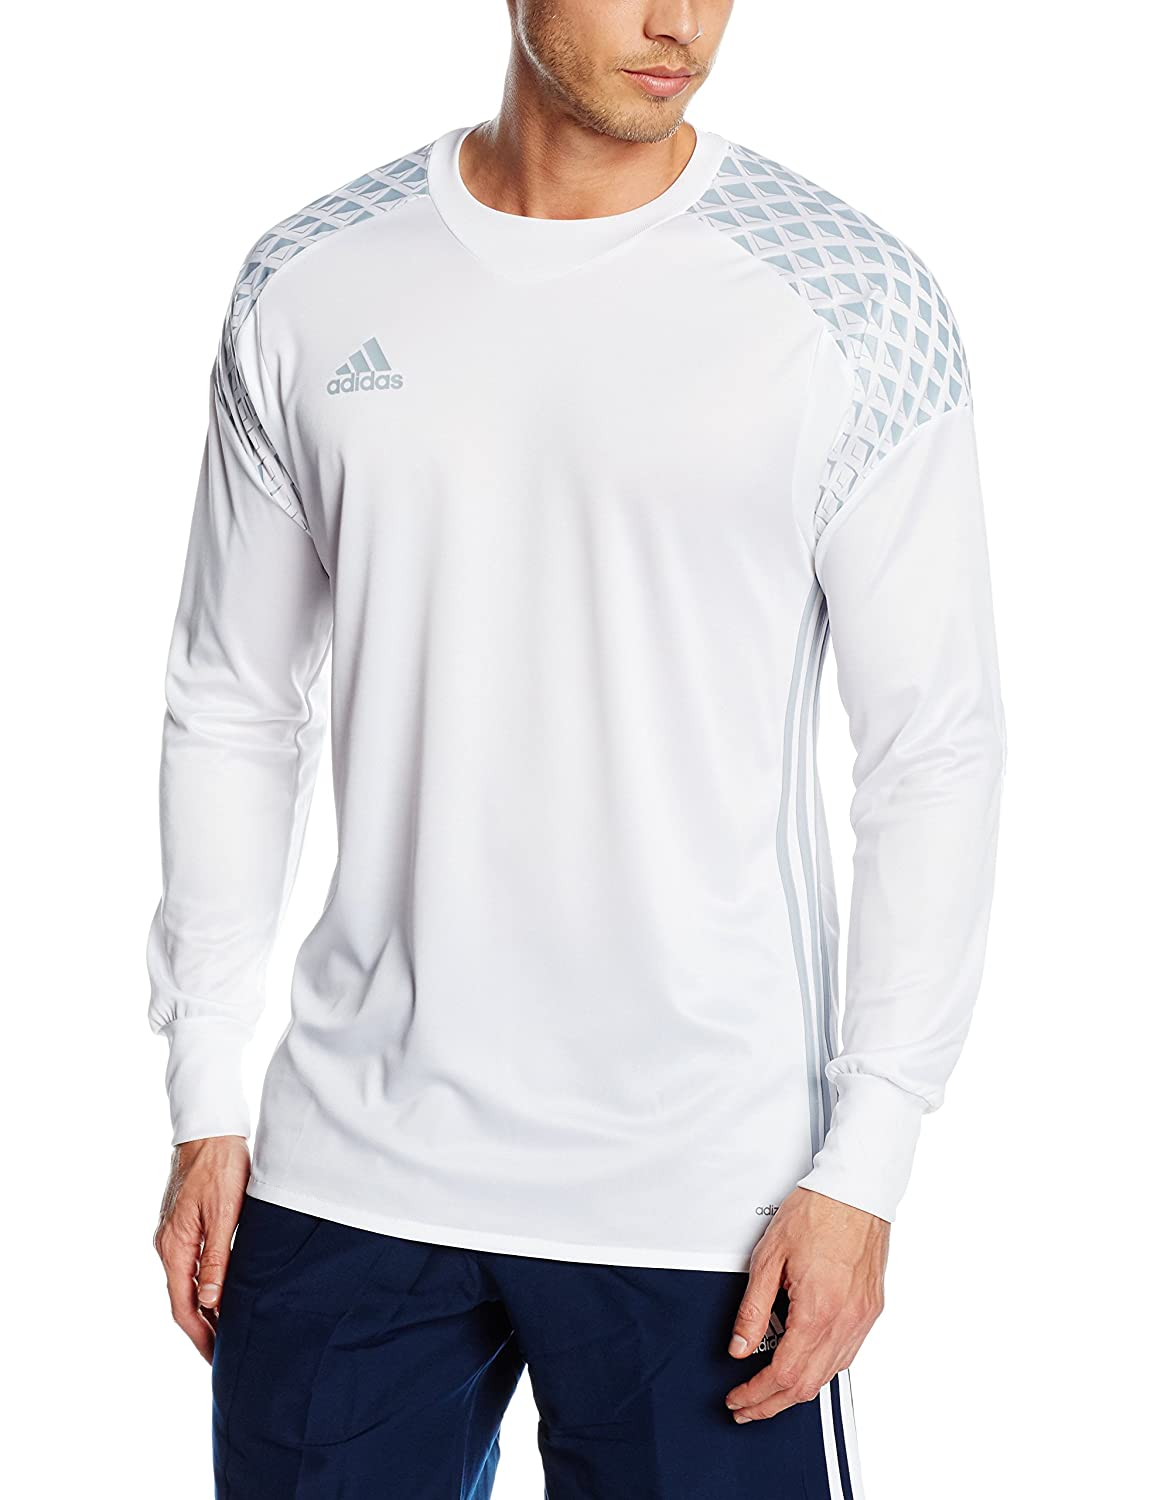 1122f4e25 adidas Men s Onore 16 Goalkeeper Jersey  Amazon.co.uk  Sports   Outdoors